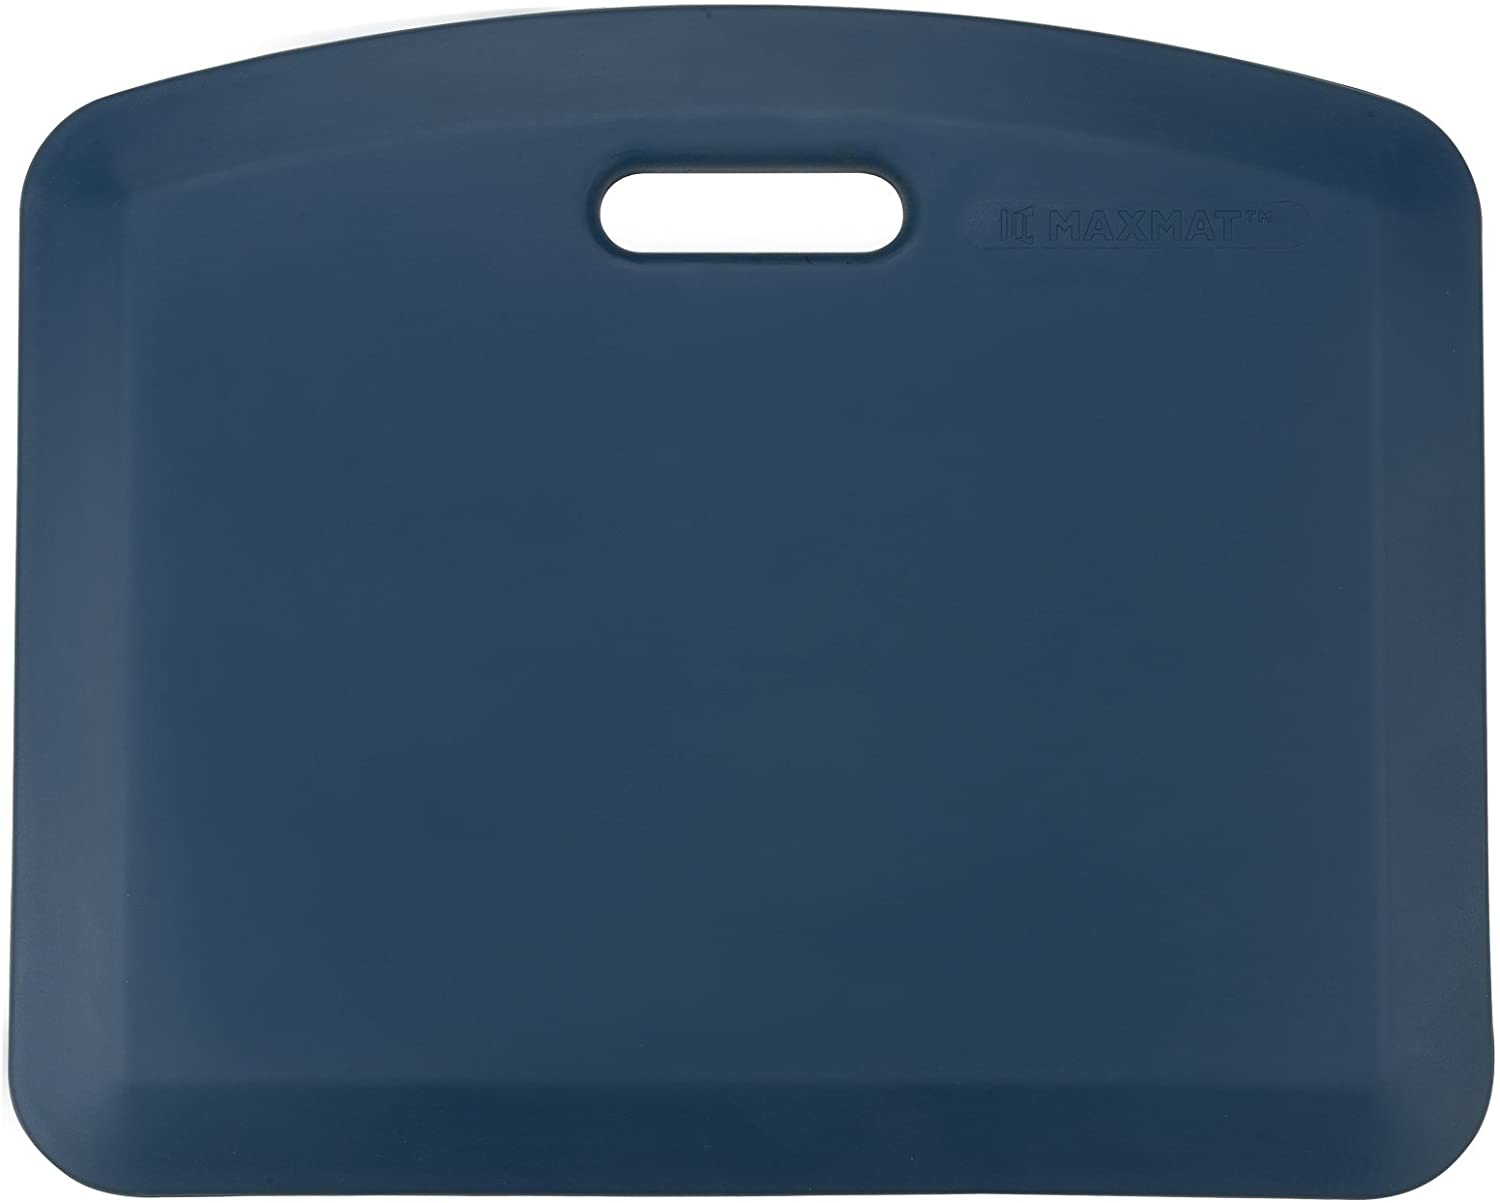 MaxMat Anti Fatigue Comfort Floor Mat -Commercial Grade Quality Perfect for Standup Desks, Kitchens, and Garages - Relieves Foot, Knee, and Back Pain 22X18X4/5inch (Blue)